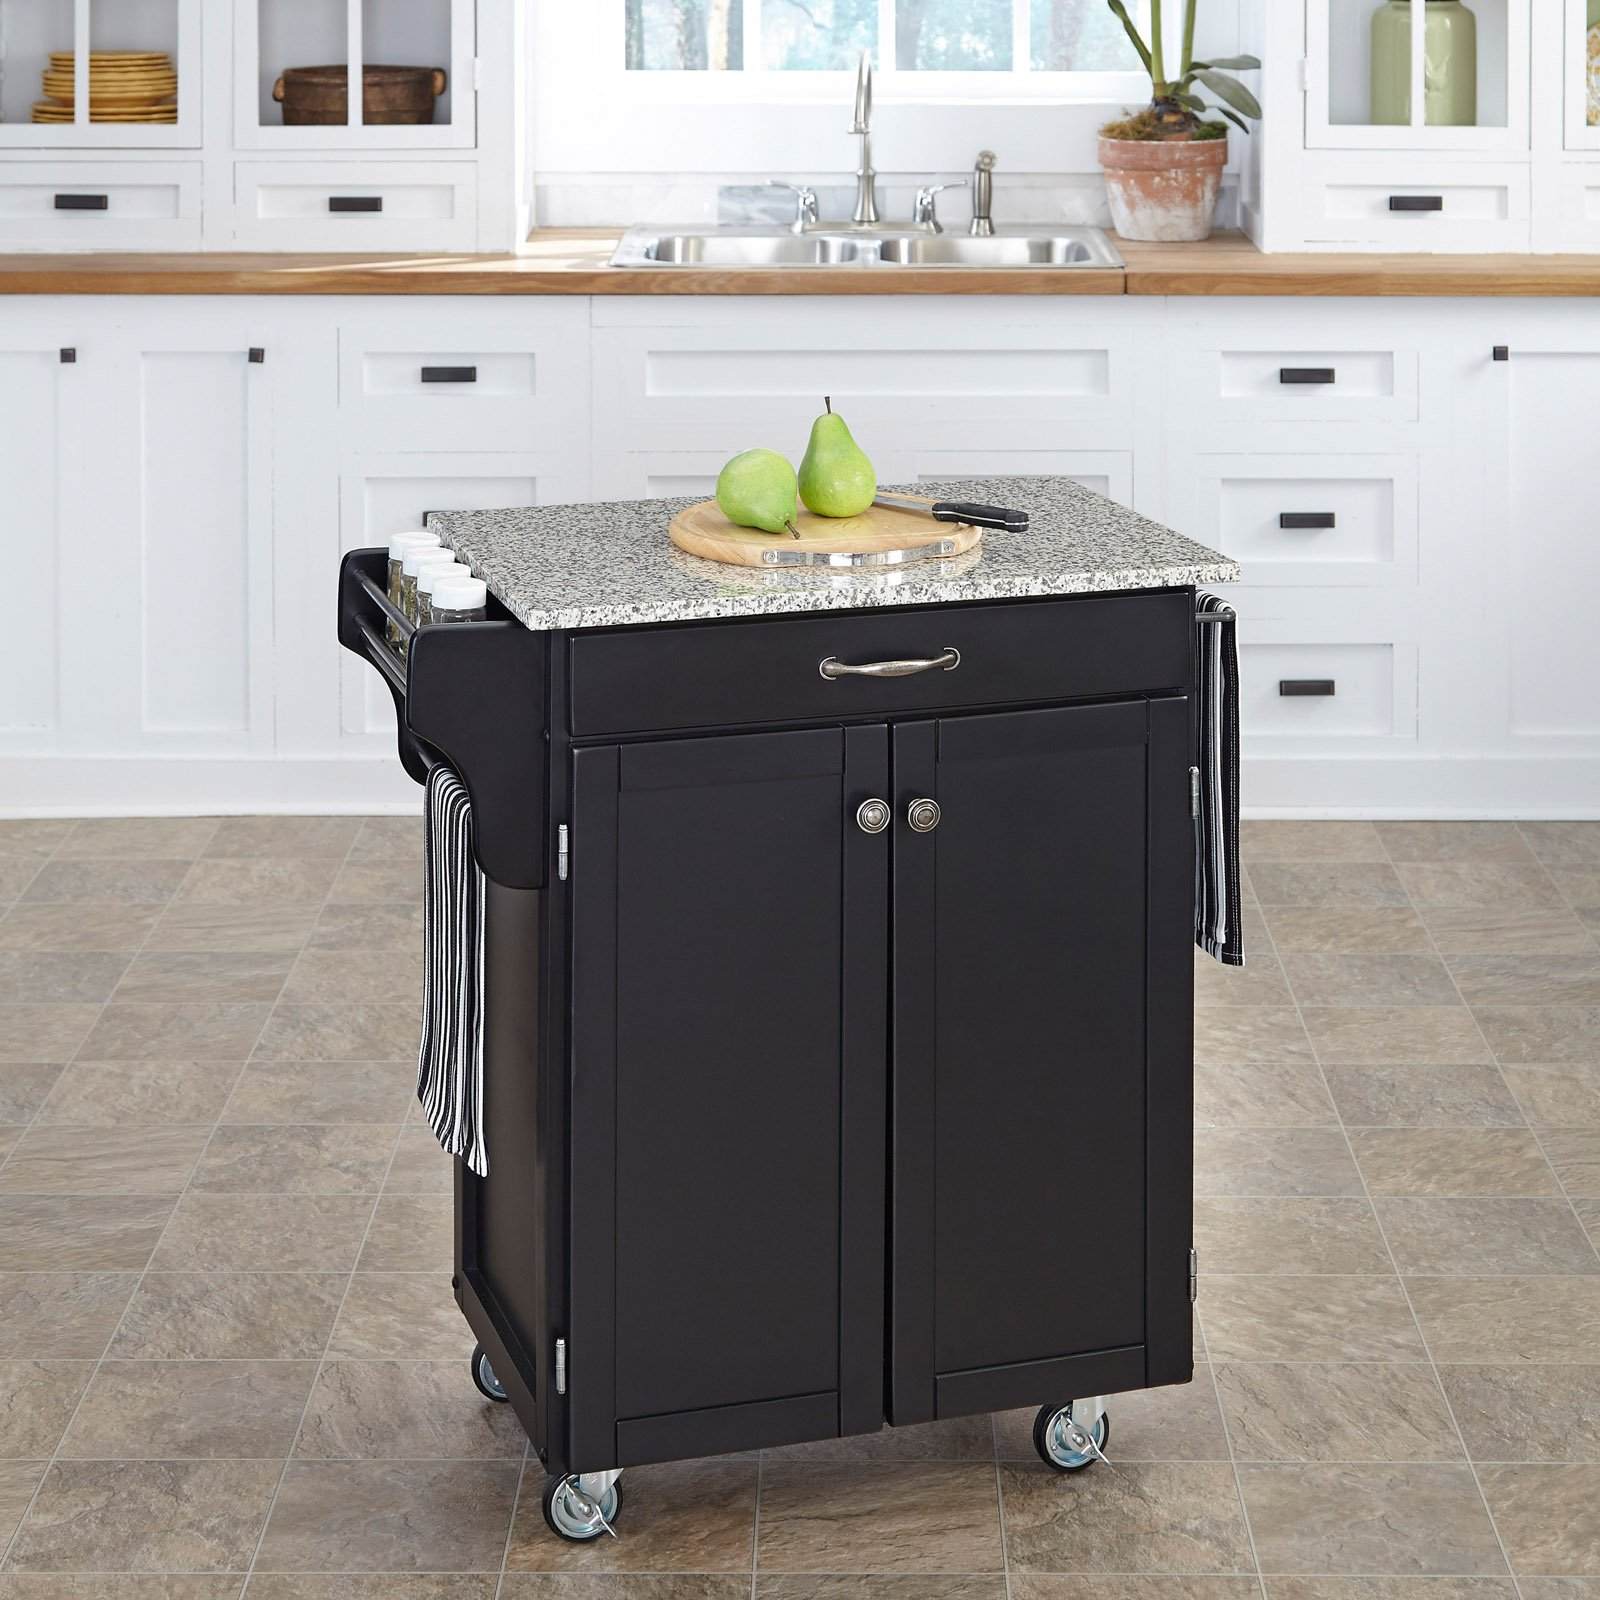 butcher kitchen on island for block appliance fascinating and cart wheels pics zdif popular style small